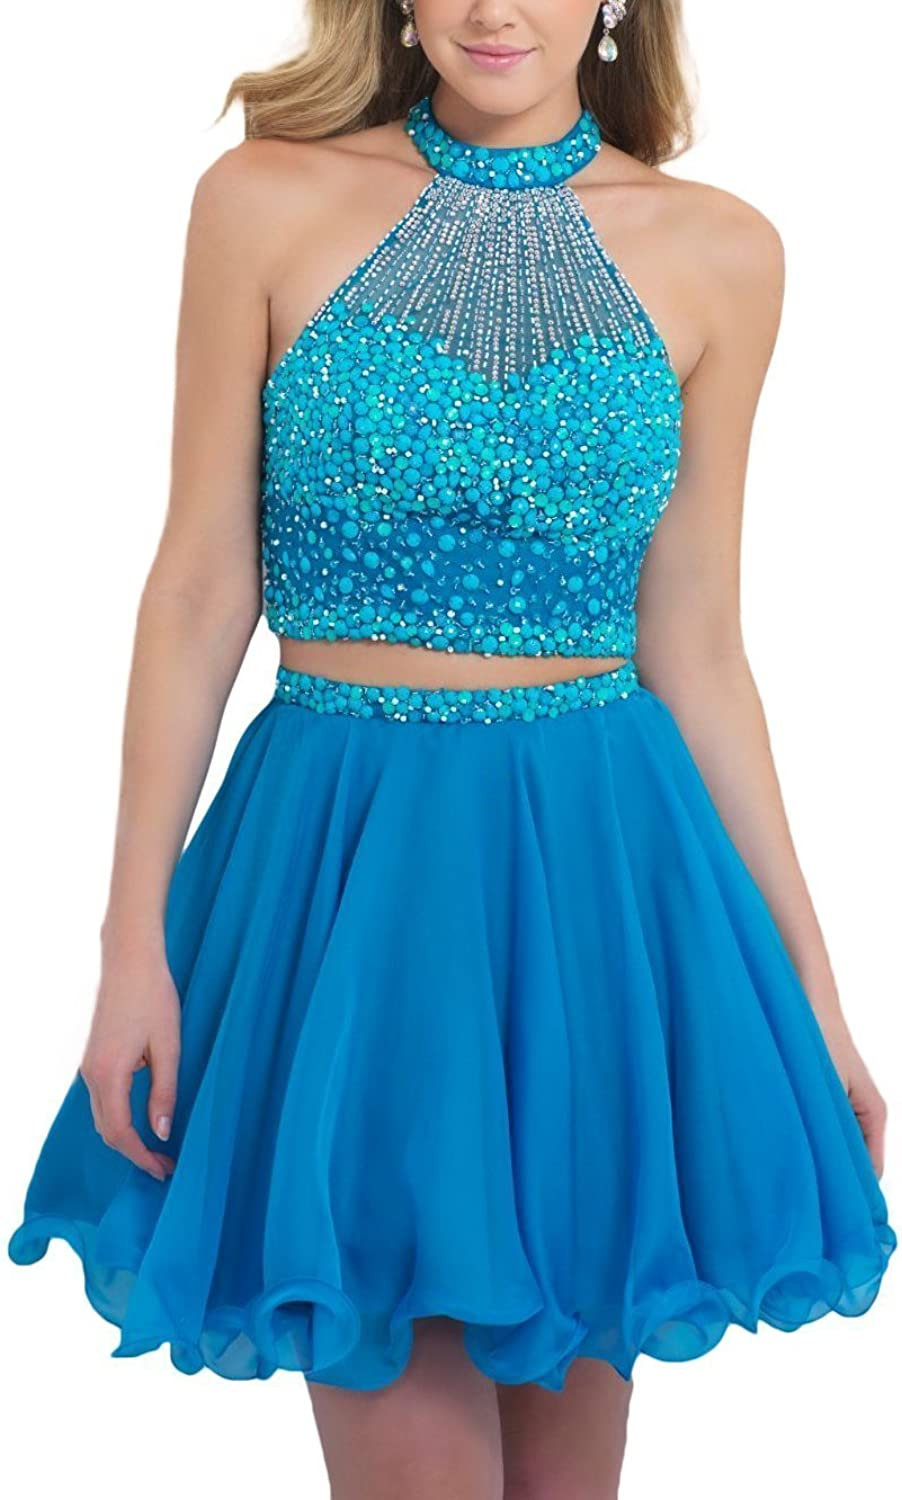 Sound of blossoming Two Pieces Short Homecoming Dress with Beads Prom Gown 017